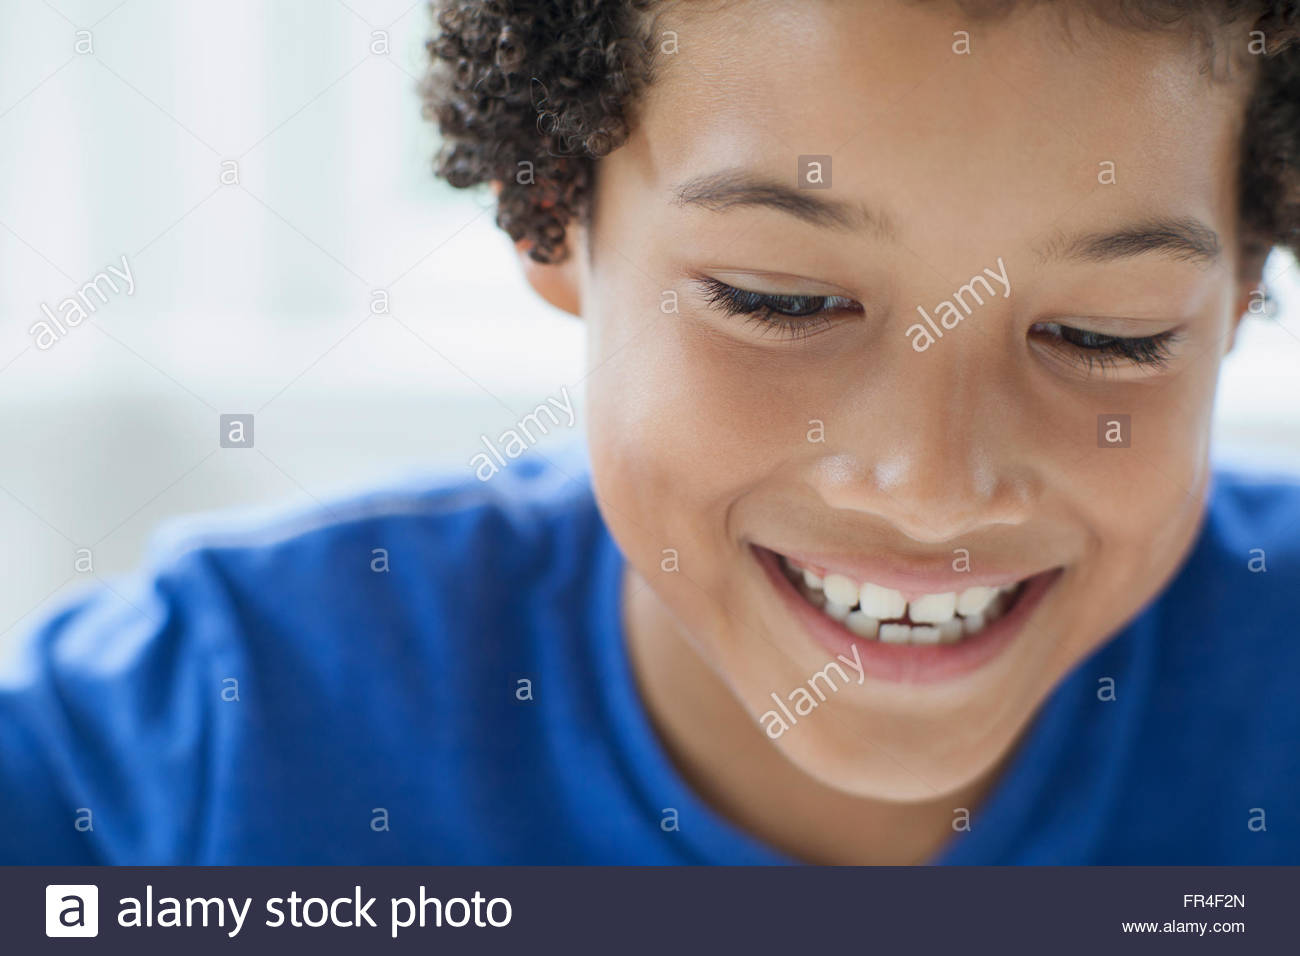 close up of cute preteen boy looking down - Stock Image